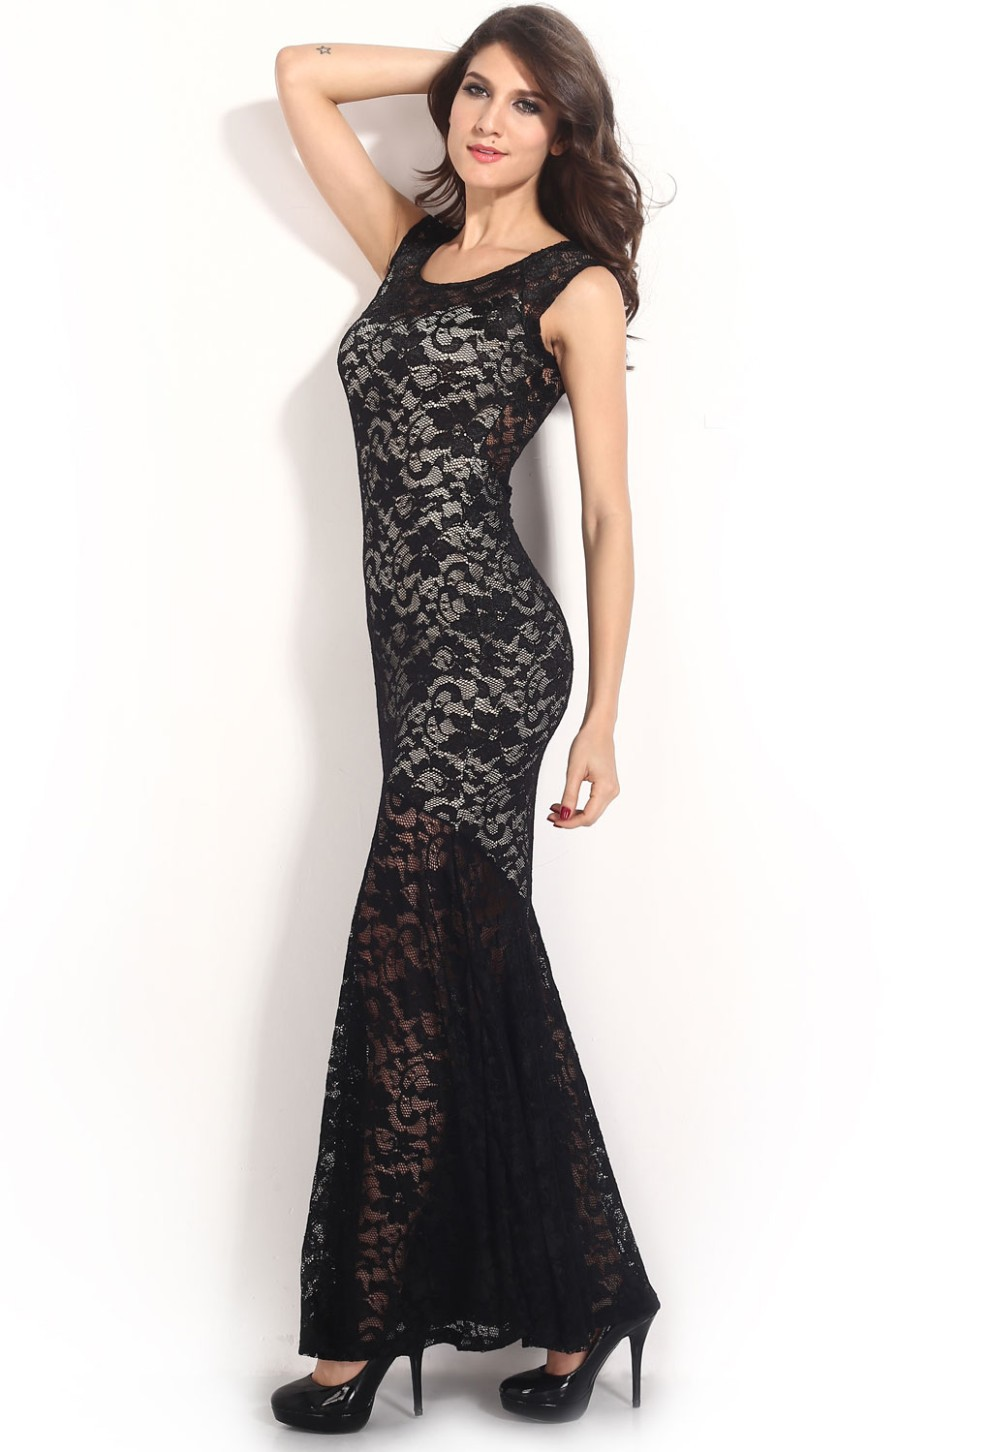 Two-toned-Sexy-Lined-Long-Lace-Evening-Dress-LC6350-15407